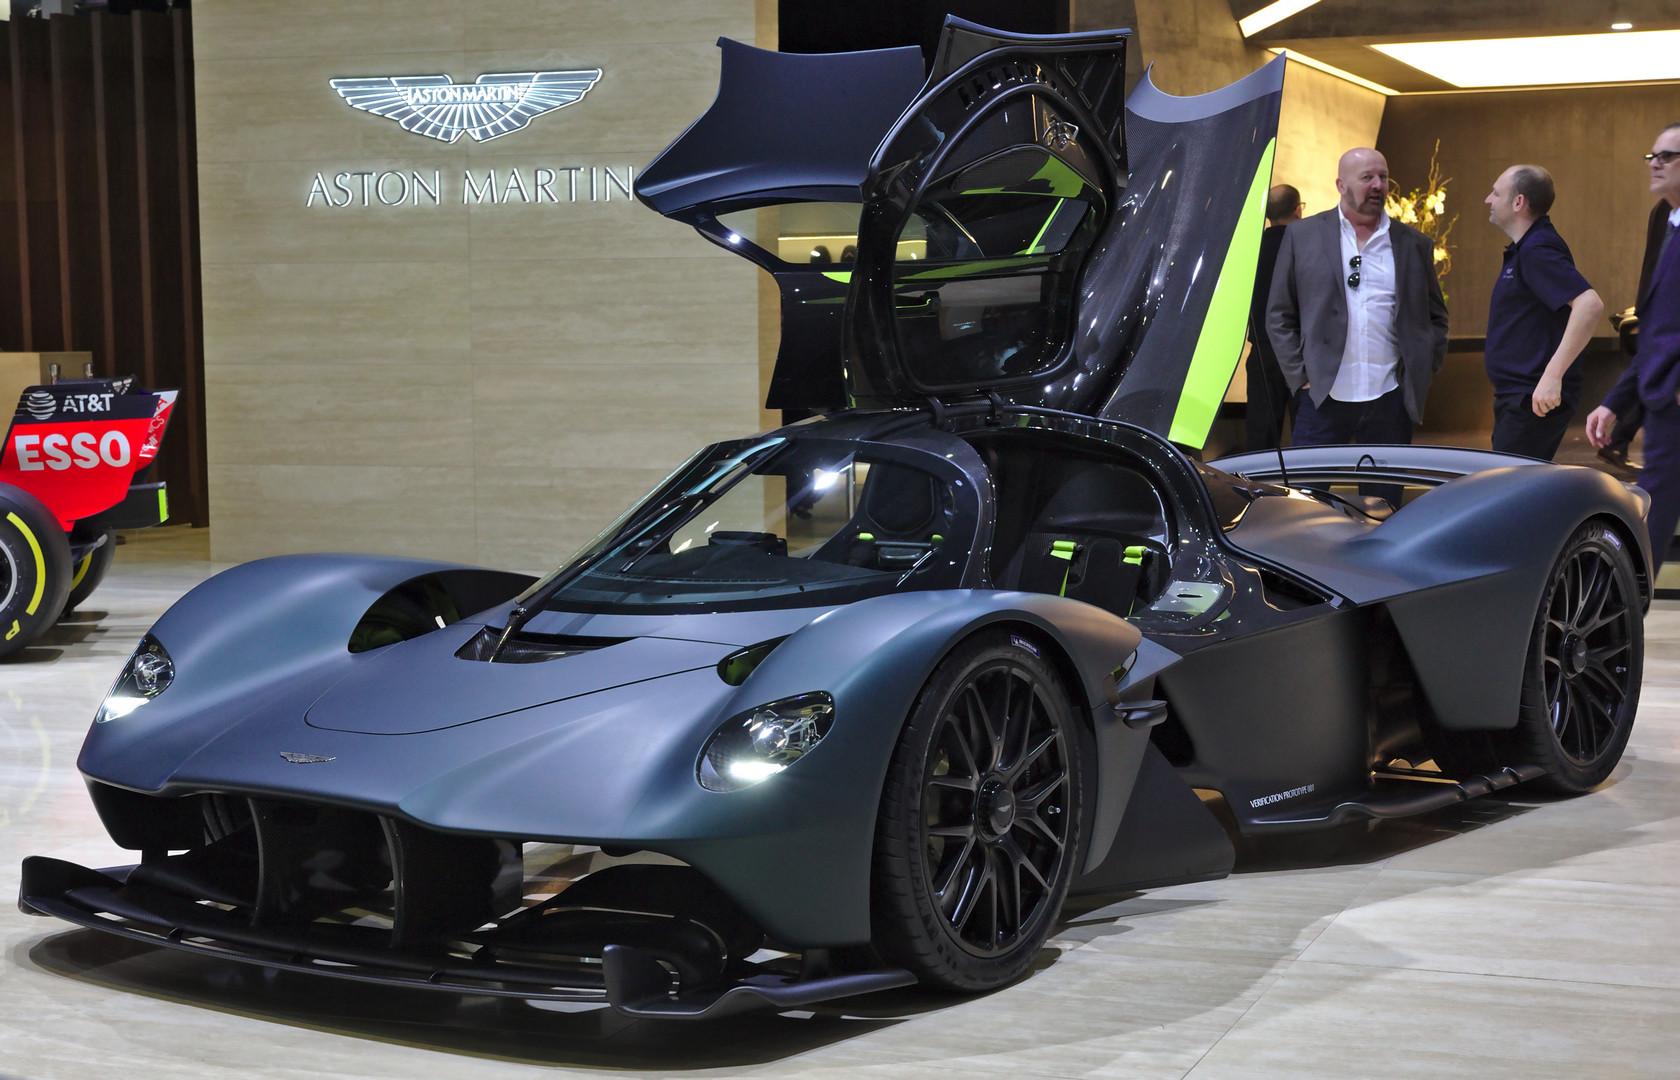 Aston Martin Valkyrie For Sale 150 Cars Worldwide Supercars